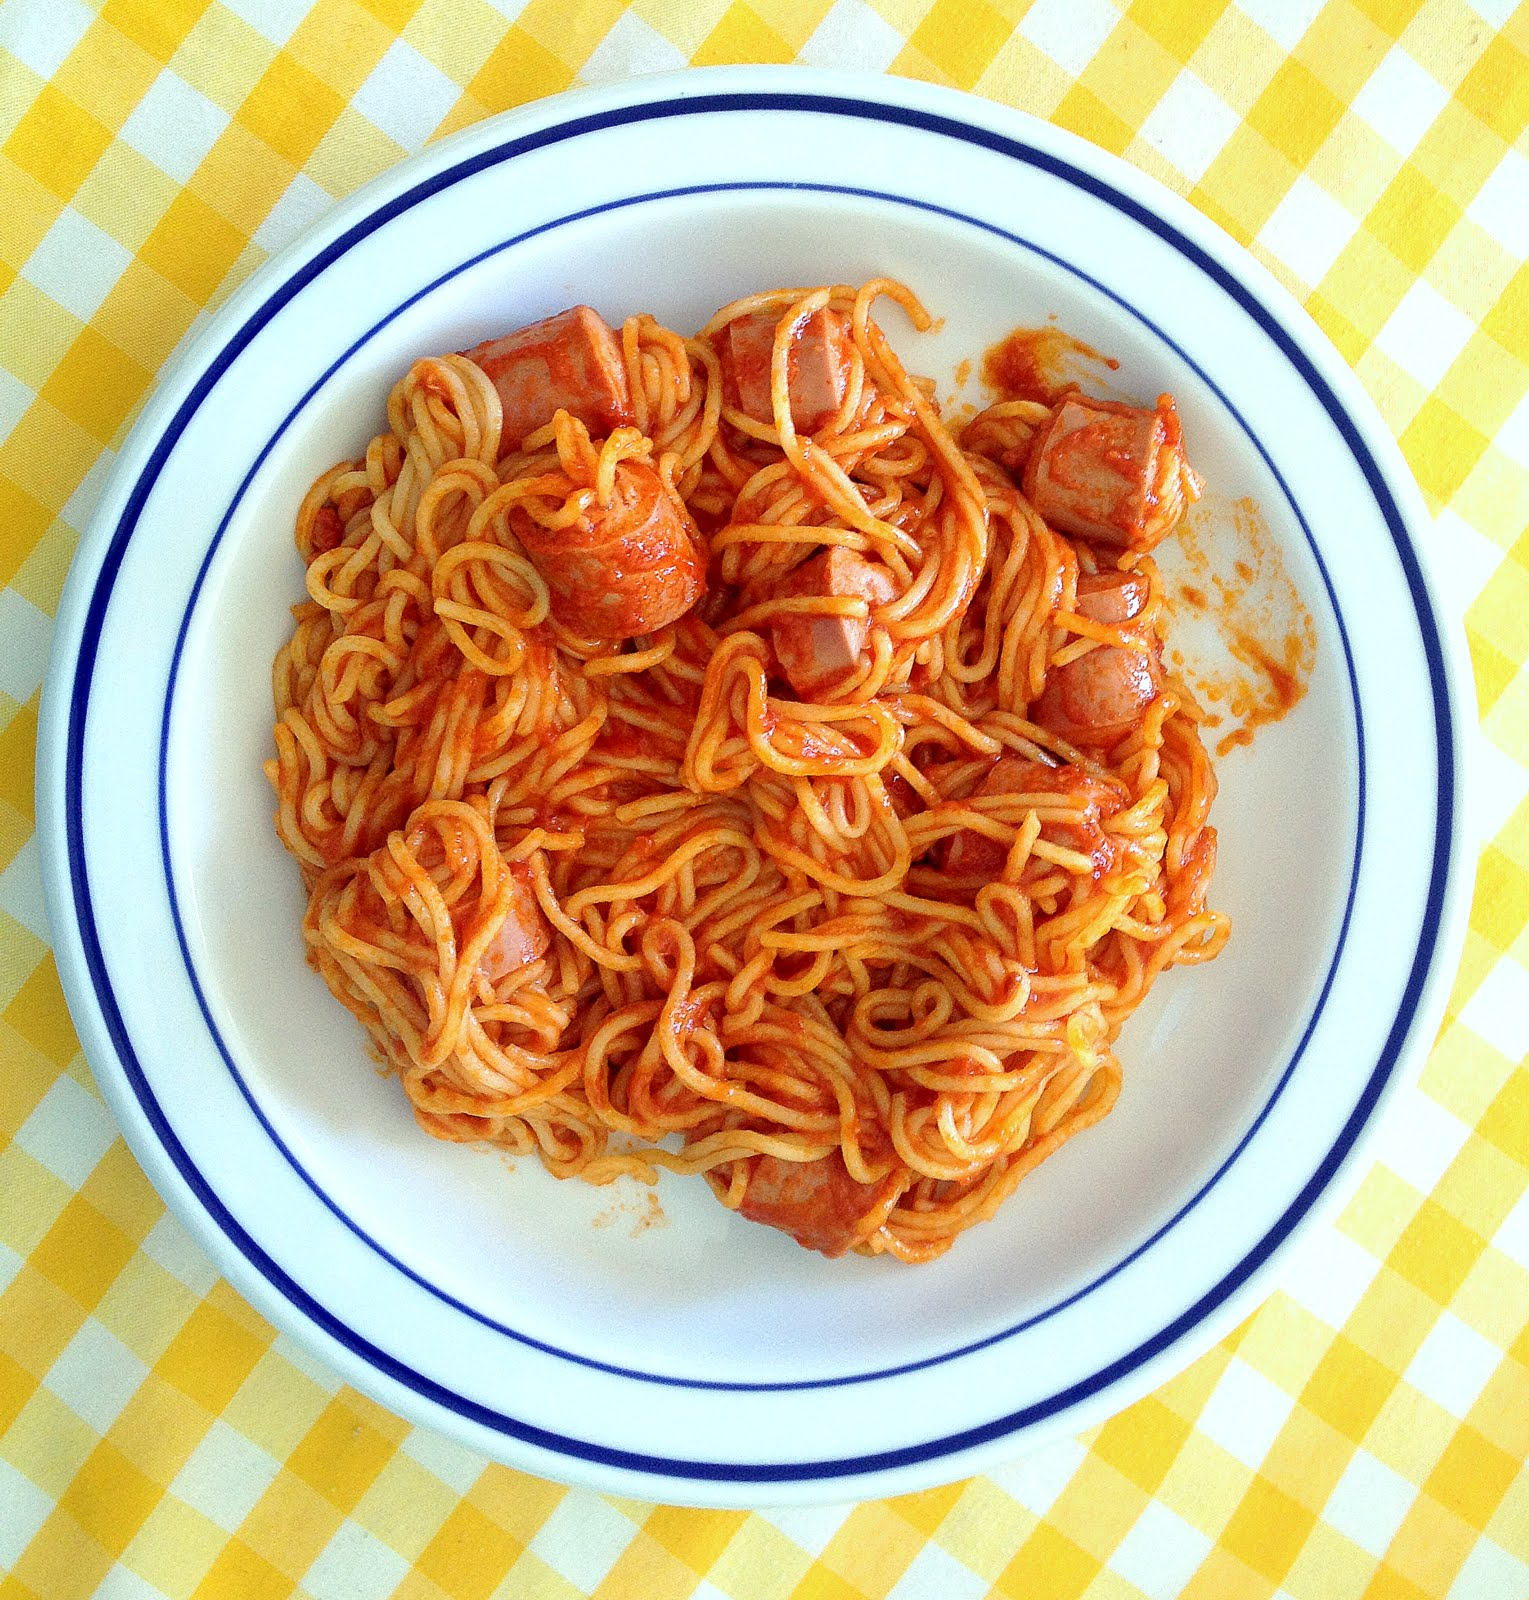 Spaghetti In A Hot Dog Bun Guided Reading Level